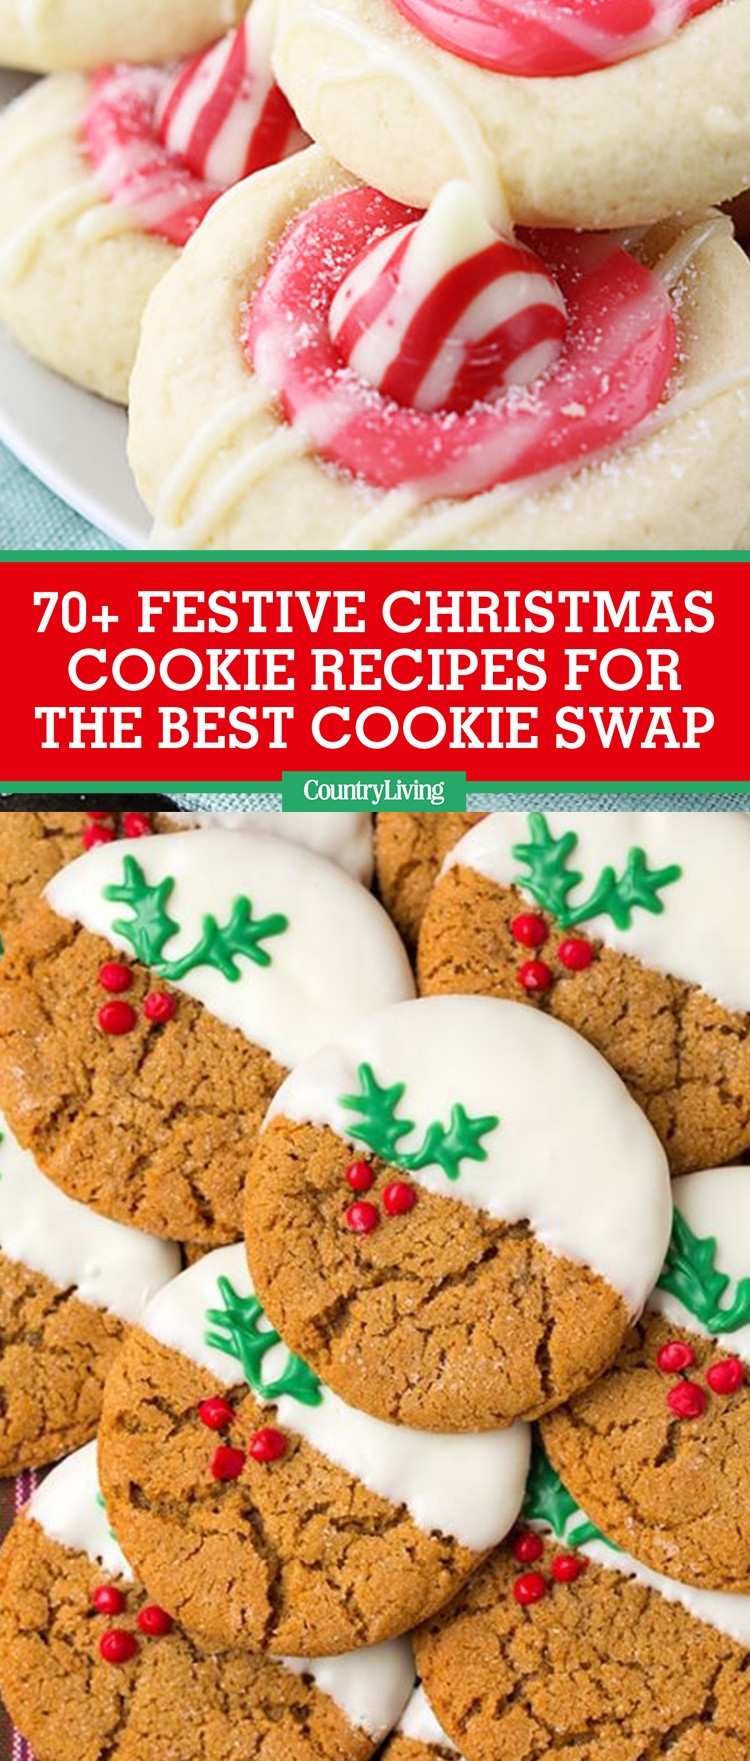 The Best Christmas Cookies Recipes  70 Best Christmas Cookie Recipes 2017 Easy Ideas for